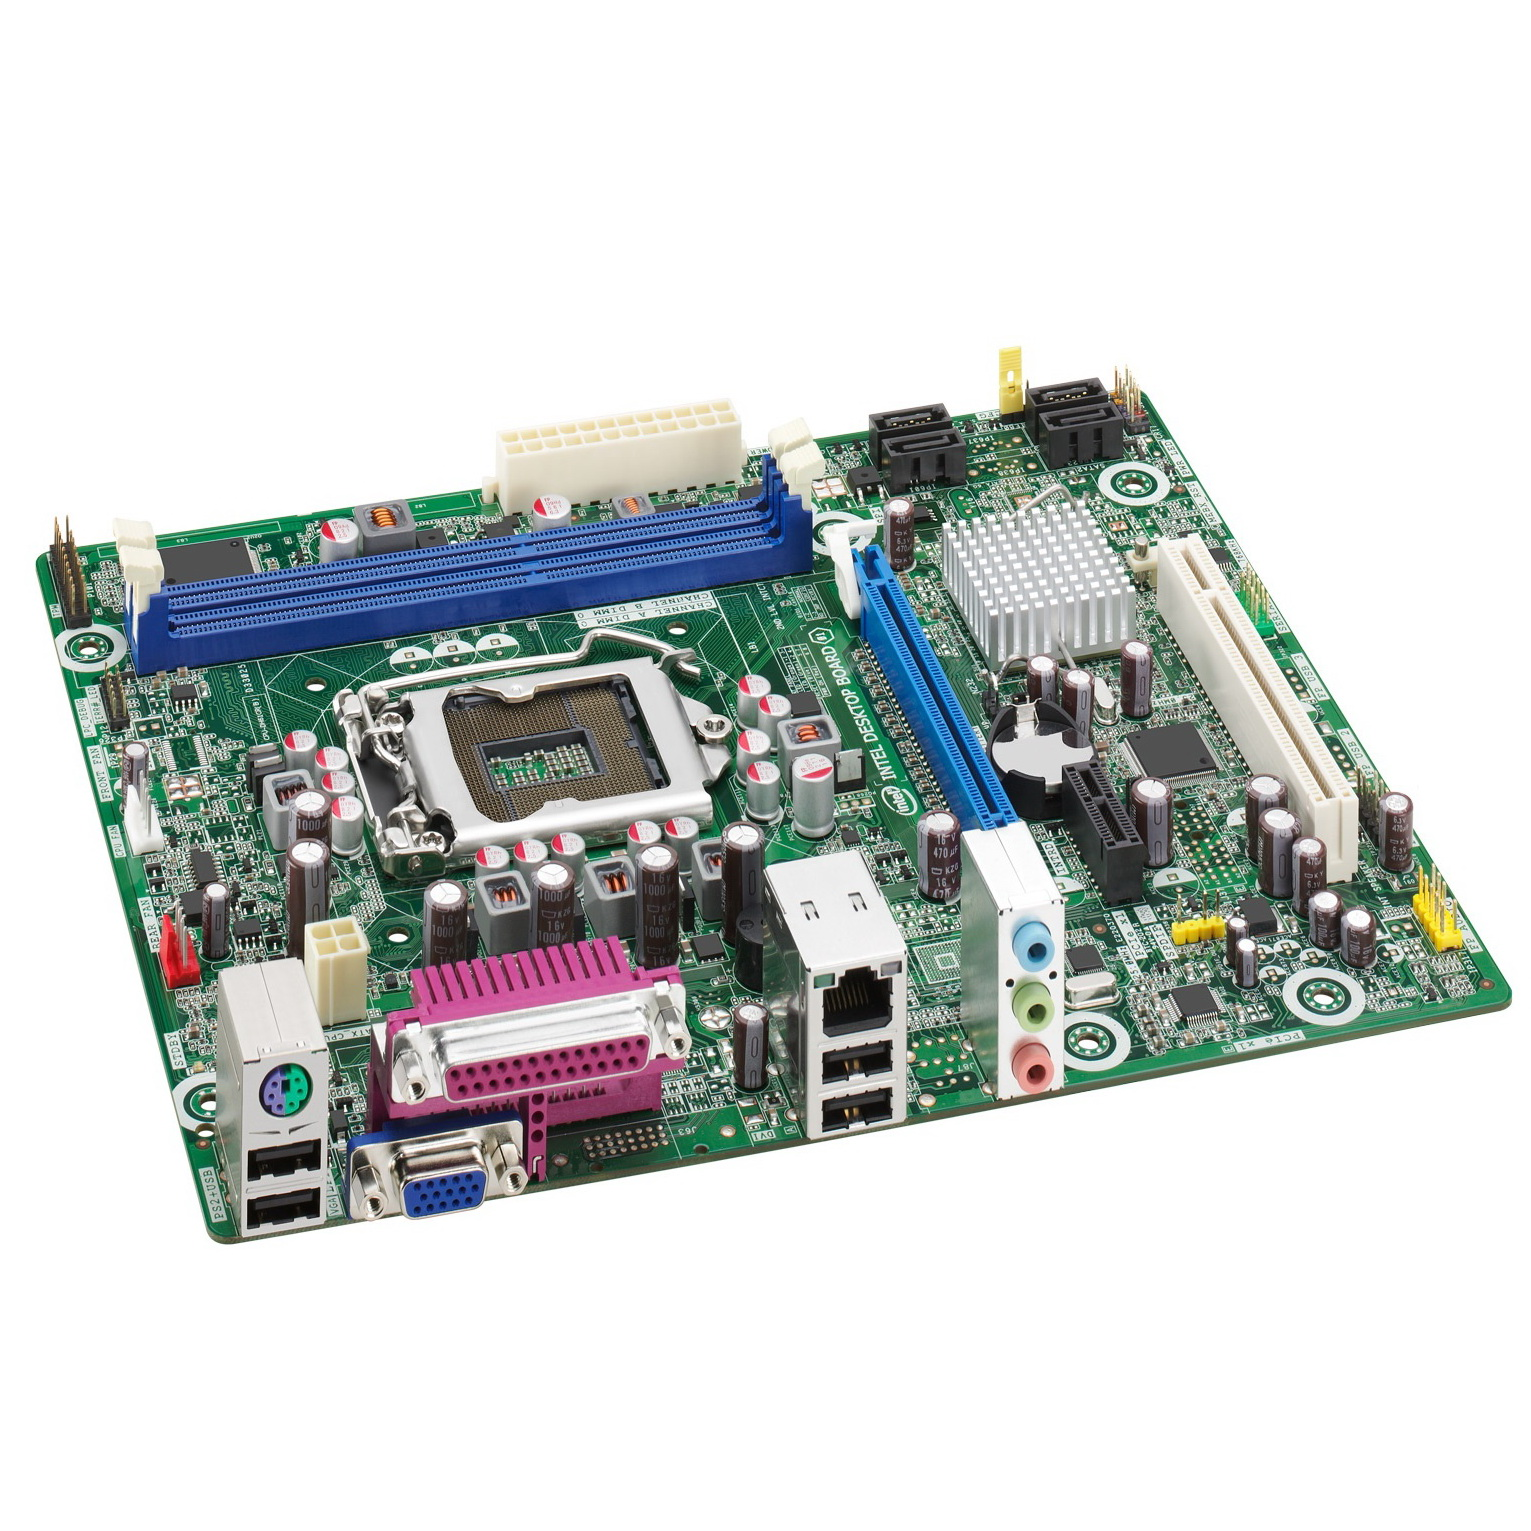 Buy Intel Dh61ww Desktop Motherboard Online In India At Lowest Mainboard Lga 775 I945 Off Board Home Computers